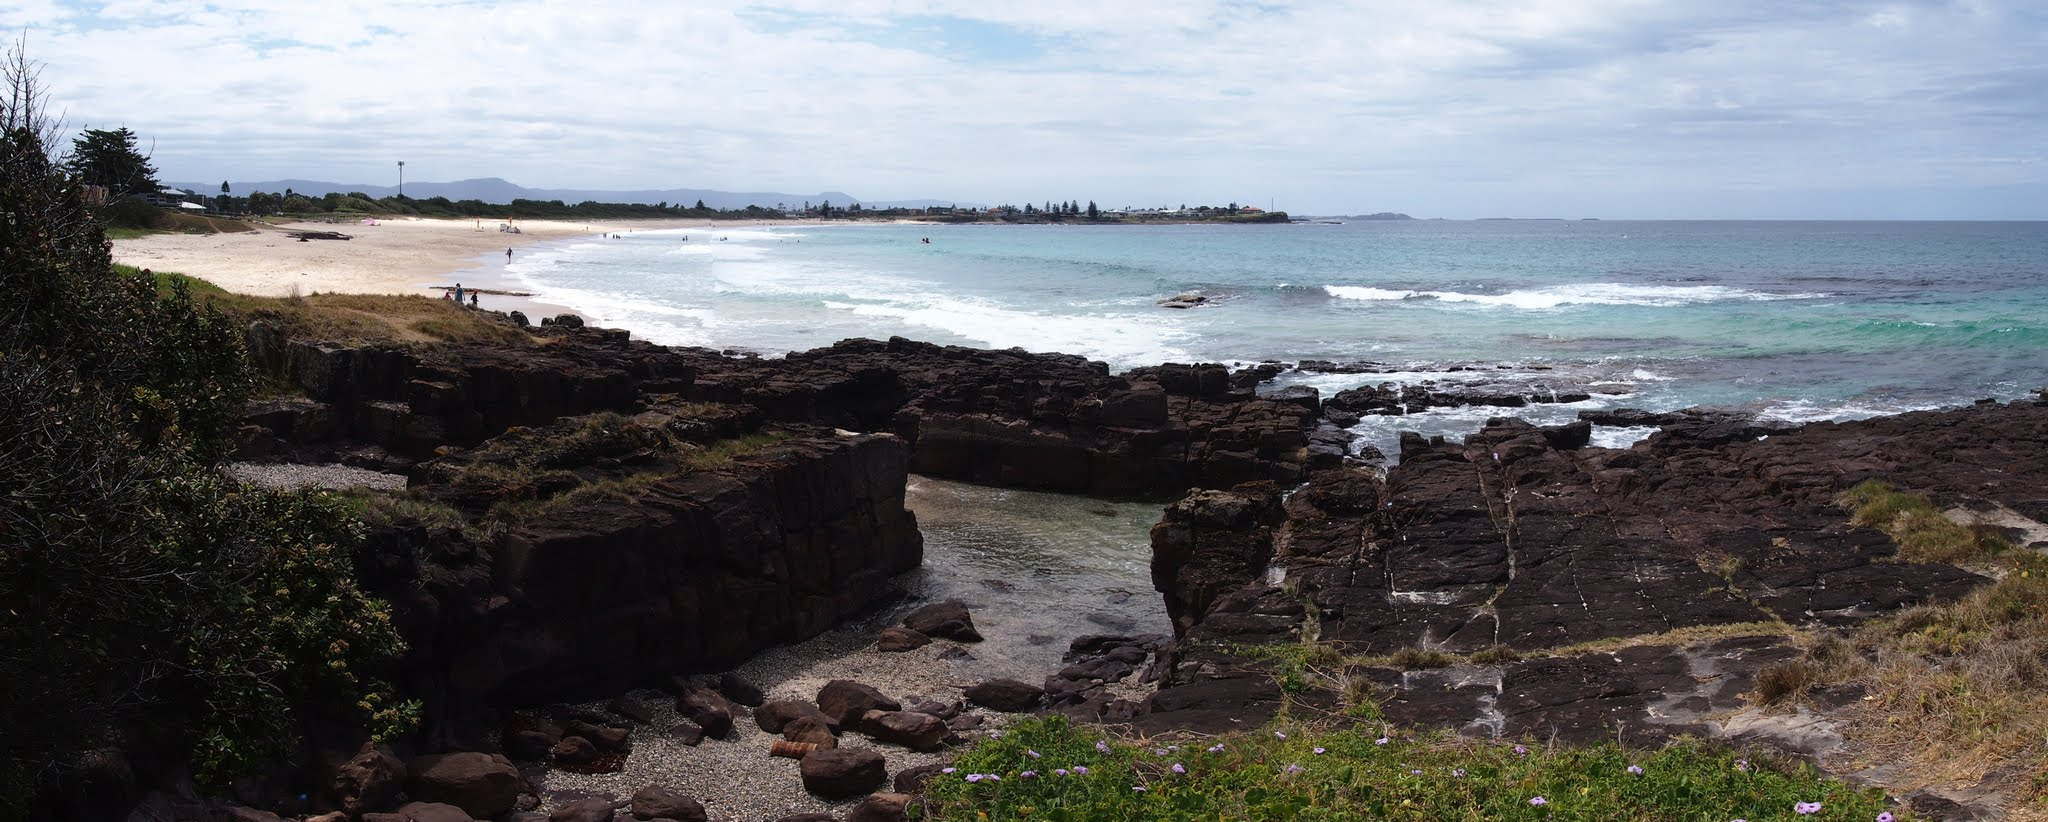 Beautiful Shellharbour Headland - Stuart Johnston Electrical Services - Local Shellharbour Electrician